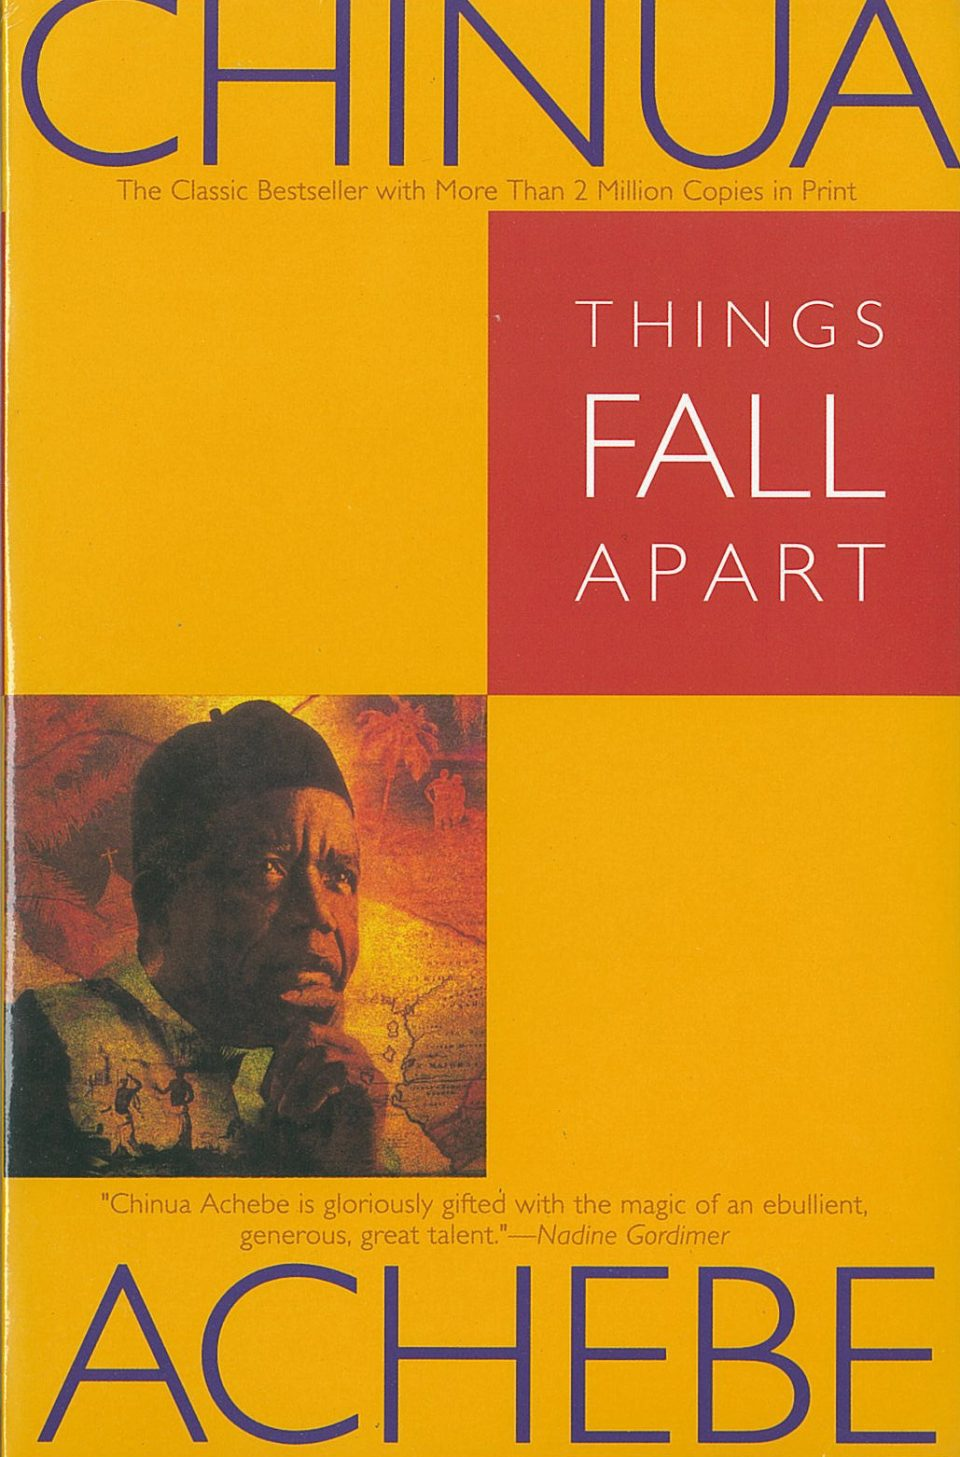 relevance of things fall apart to the modern society Visit amazoncom's chinua achebe page and he gained worldwide attention for things fall apart in achebe's novels focus on the traditions of igbo society.